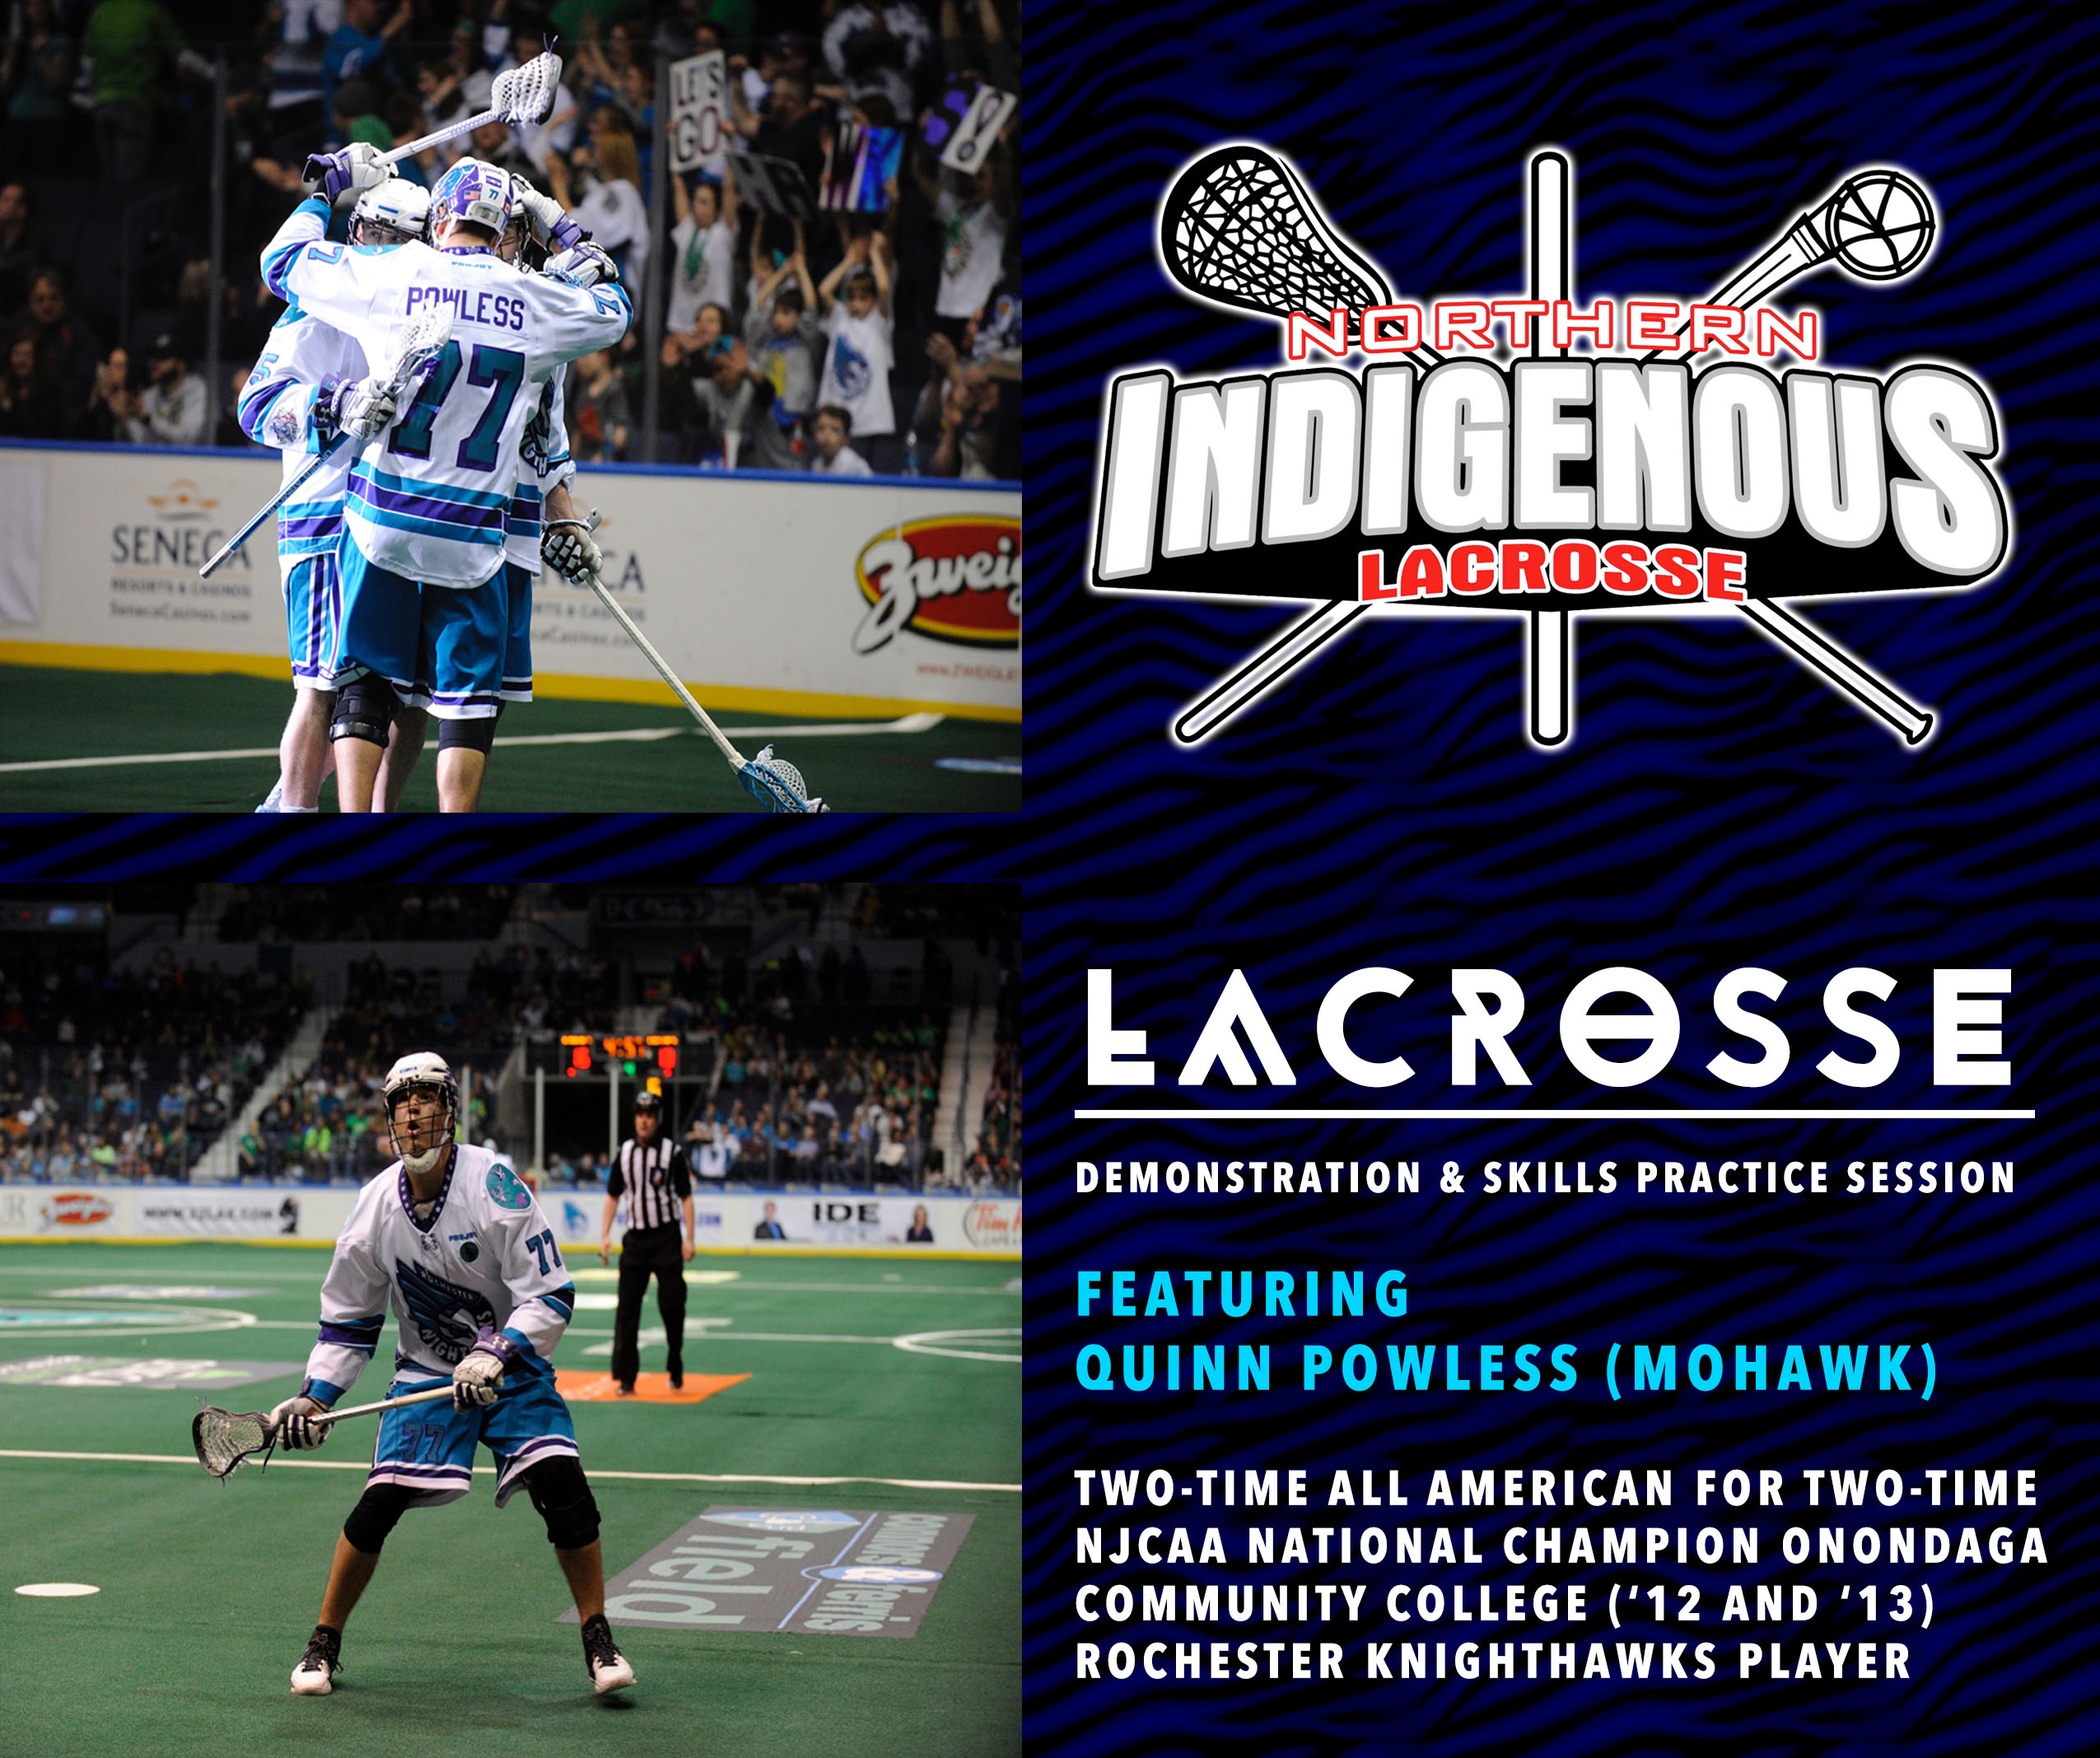 Lacrosse_with_quinn_powless-banner.jpg